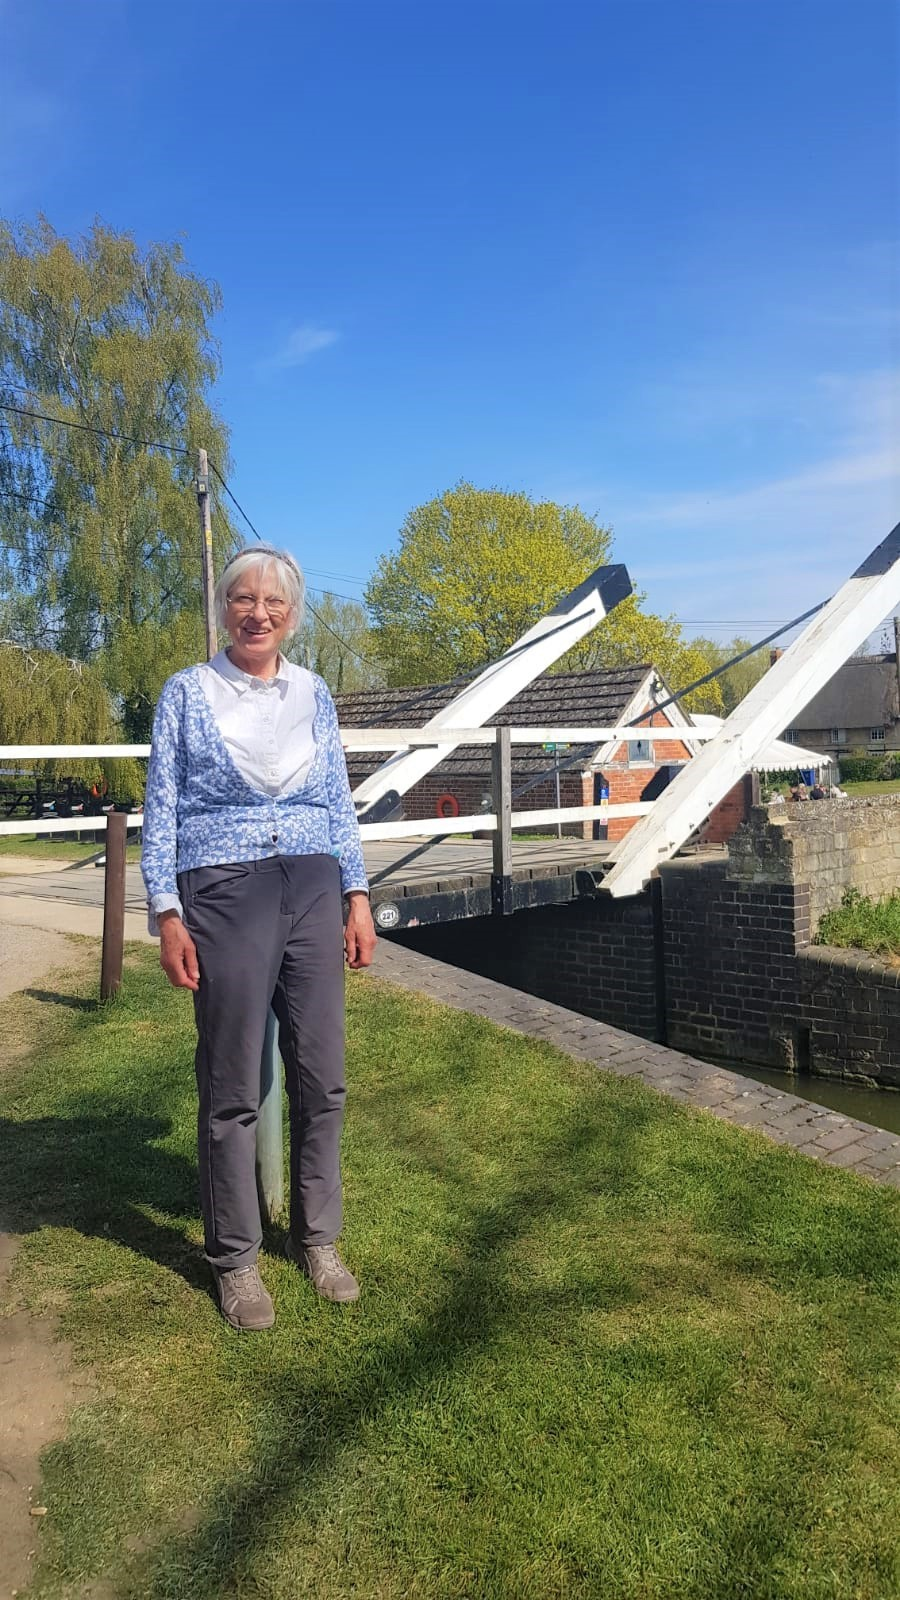 Elaine Steane at Thrupp swing bridge